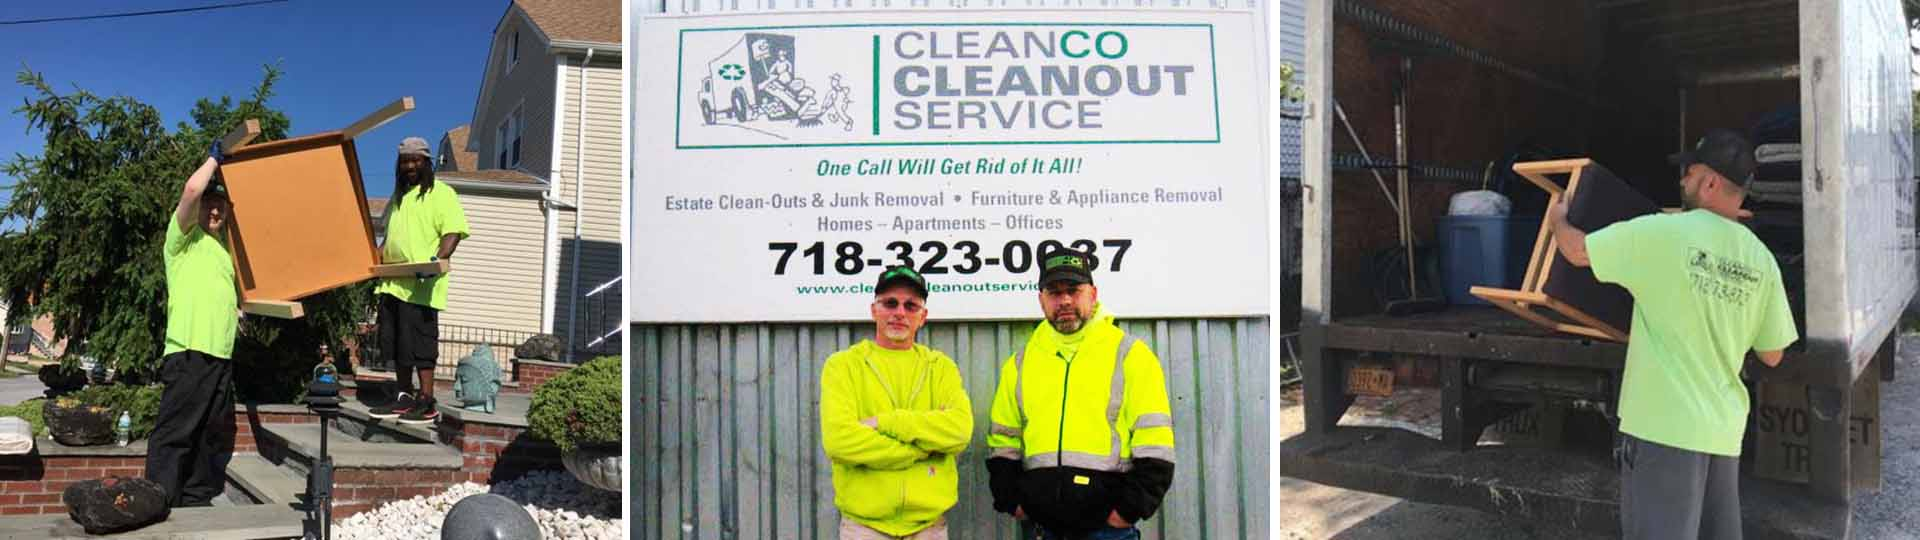 Cleanco Cleanout Services